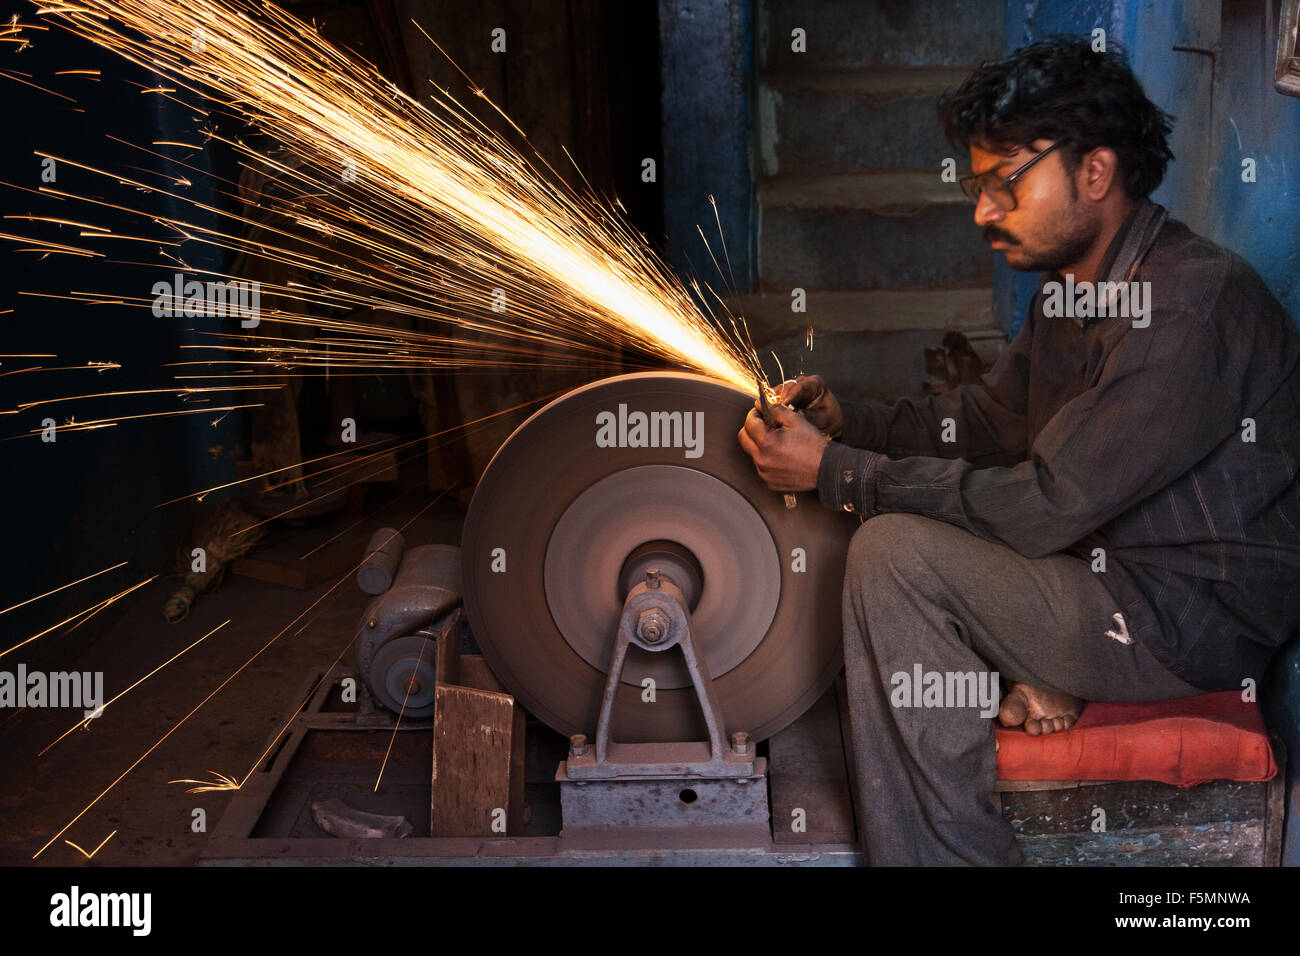 Sharpening tools in India the traditional way. - Stock Image